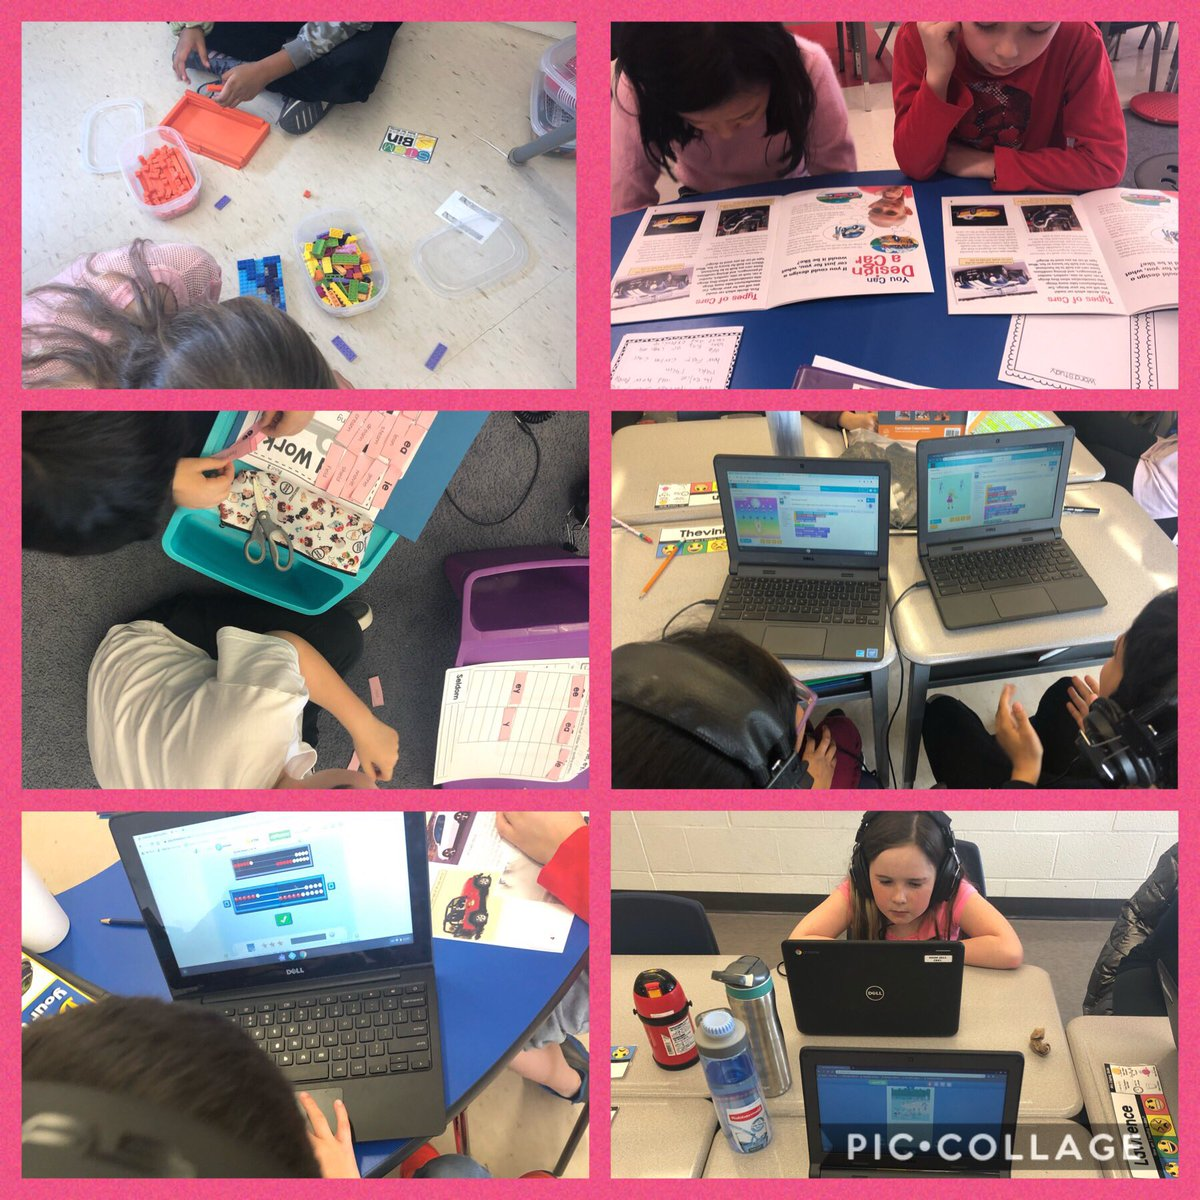 Totally engaged and on task during literacy centres today! Check out these students doing STEM Bins, Guided Reading/Meet with Teacher, Word Work, Tech Time (coding), Dreambox and Raz-kids! pic.twitter.com/mXdI7jevR6